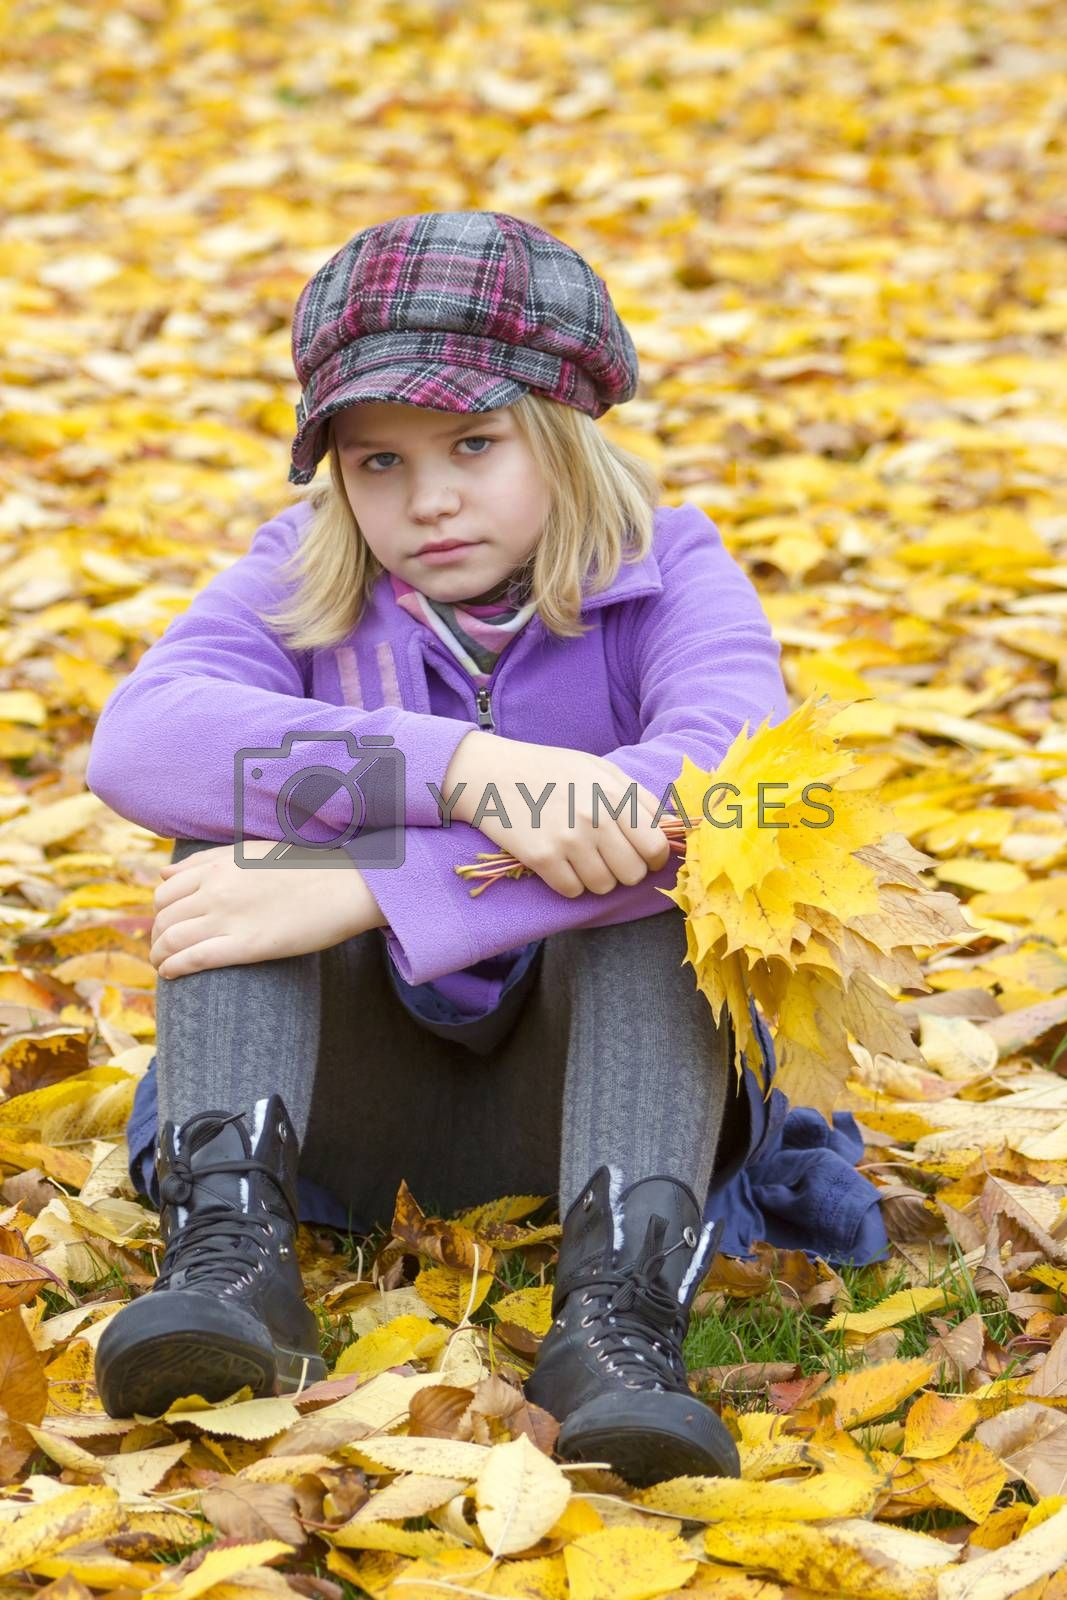 Royalty free image of little girl sitting on leaves in the park by miradrozdowski